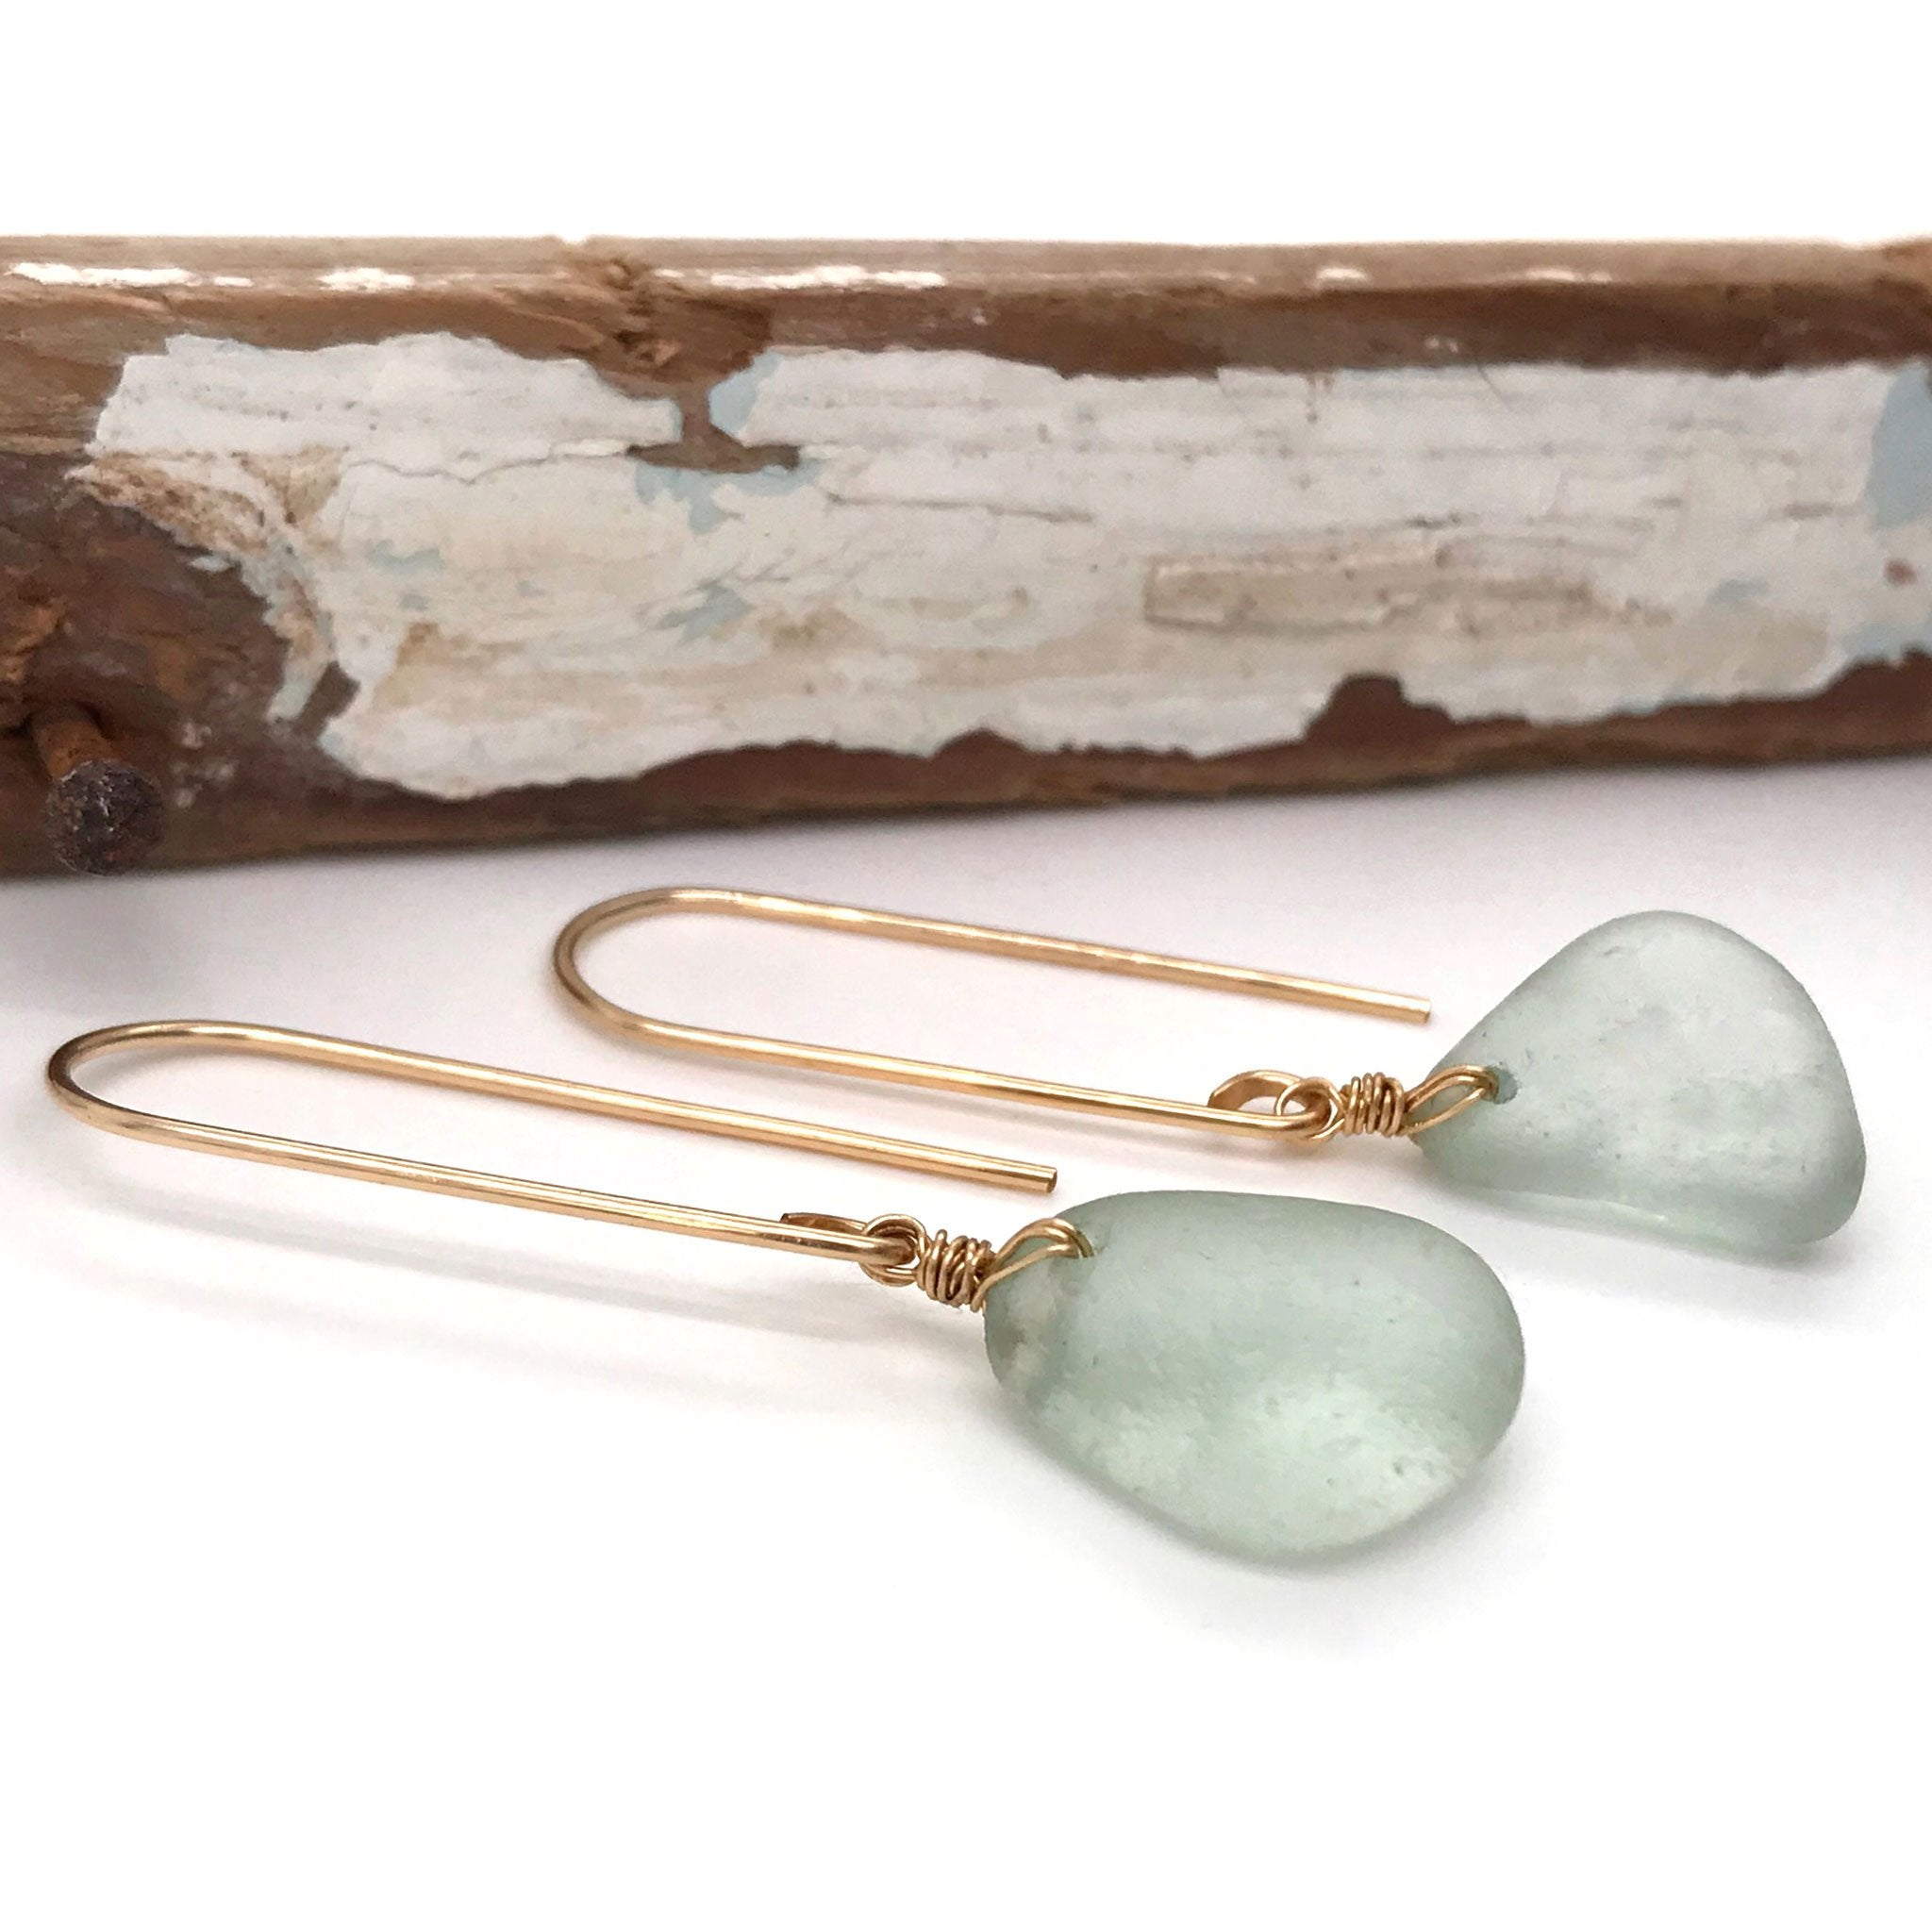 seafoam green earrings beach glass on gold hooks Kriket Broadhurst jewellery